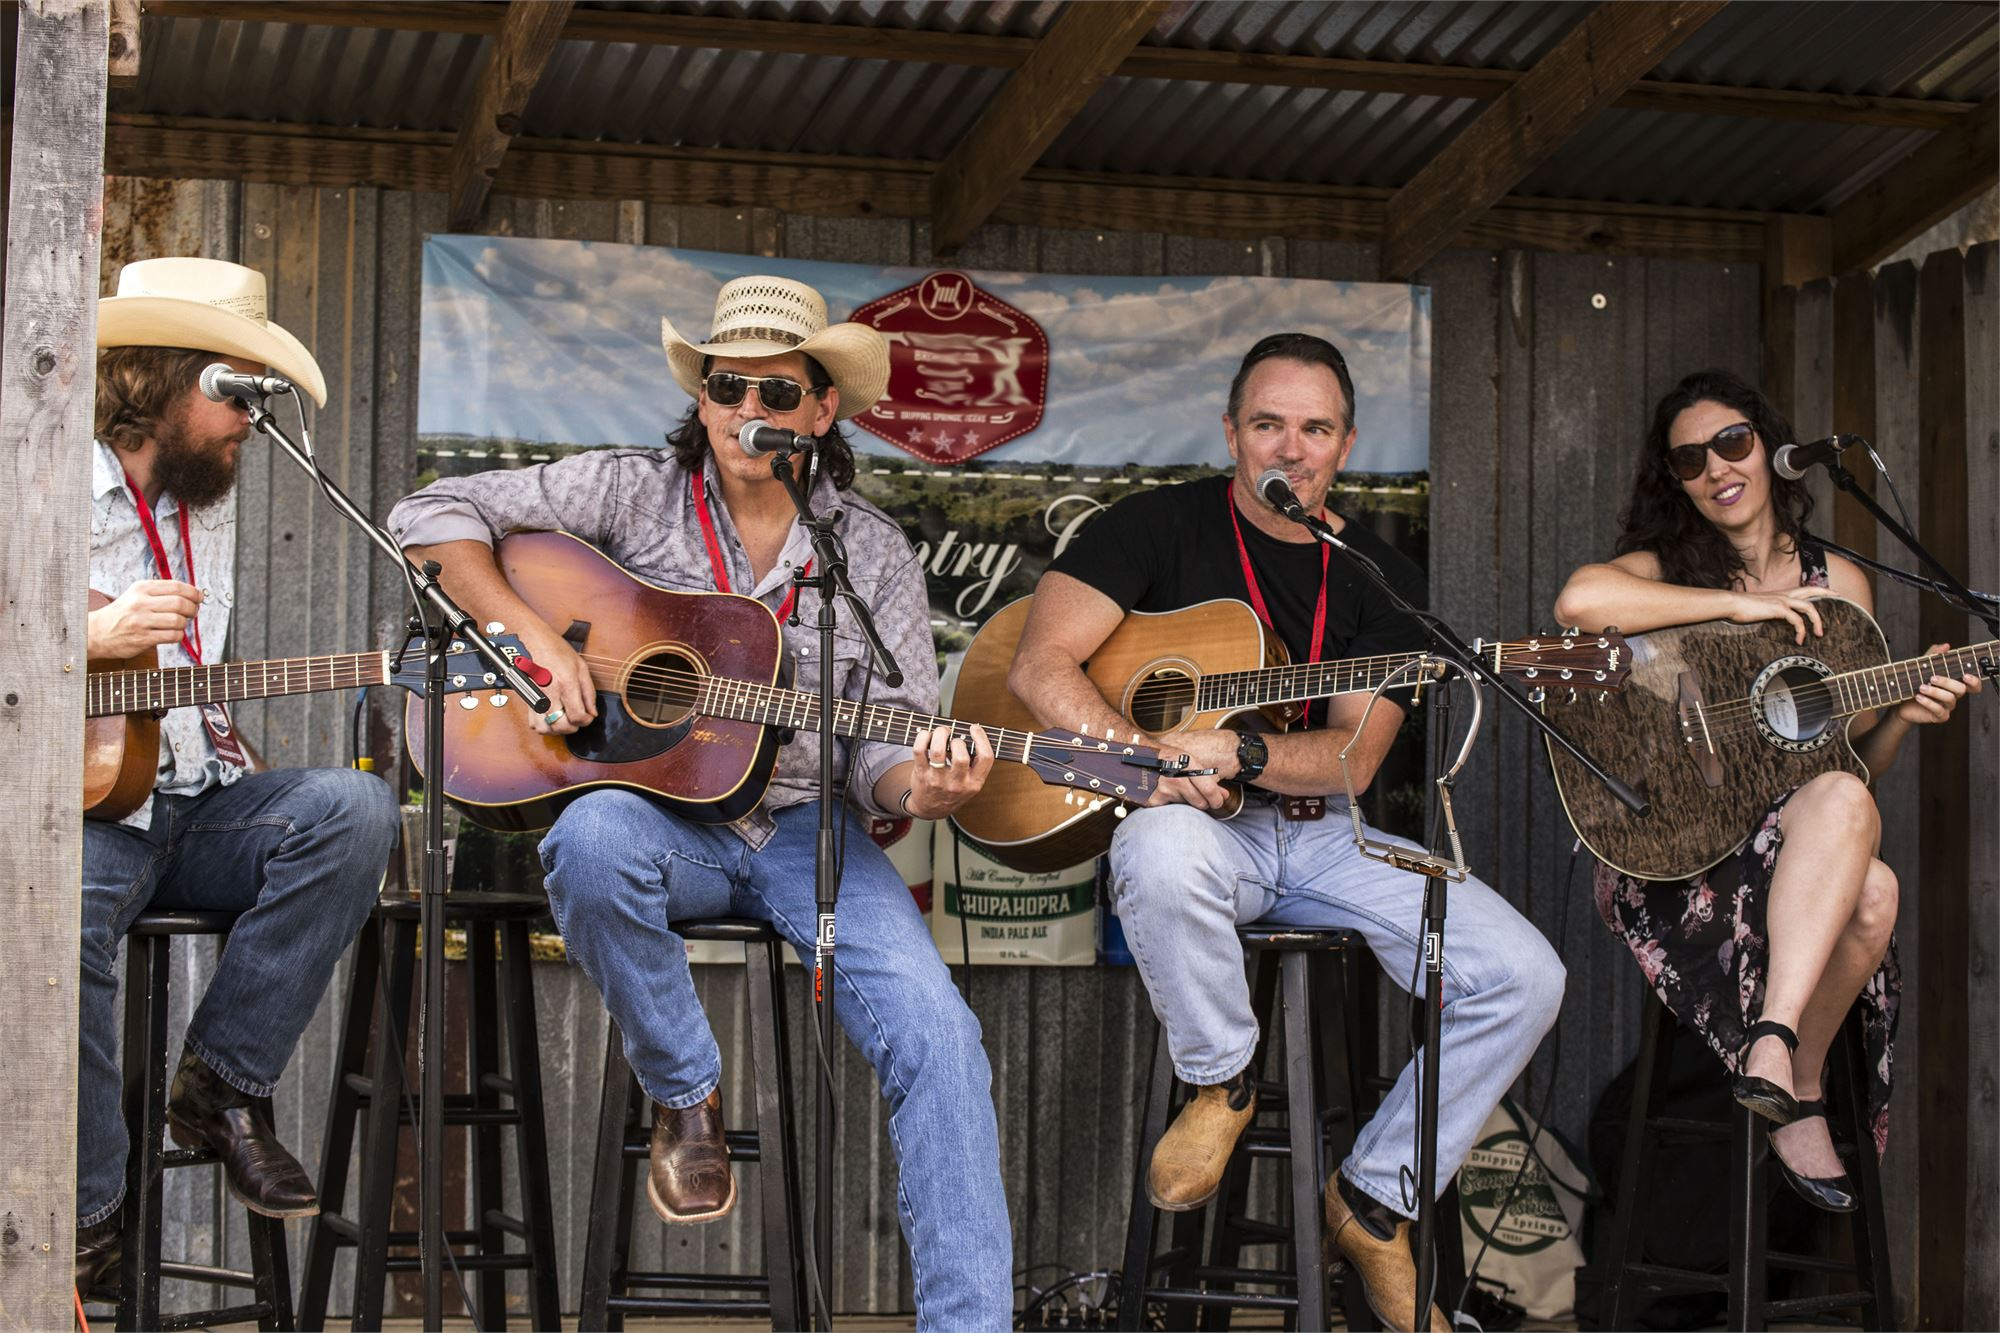 Four different songwriters playing guitars on an outdoor stage.